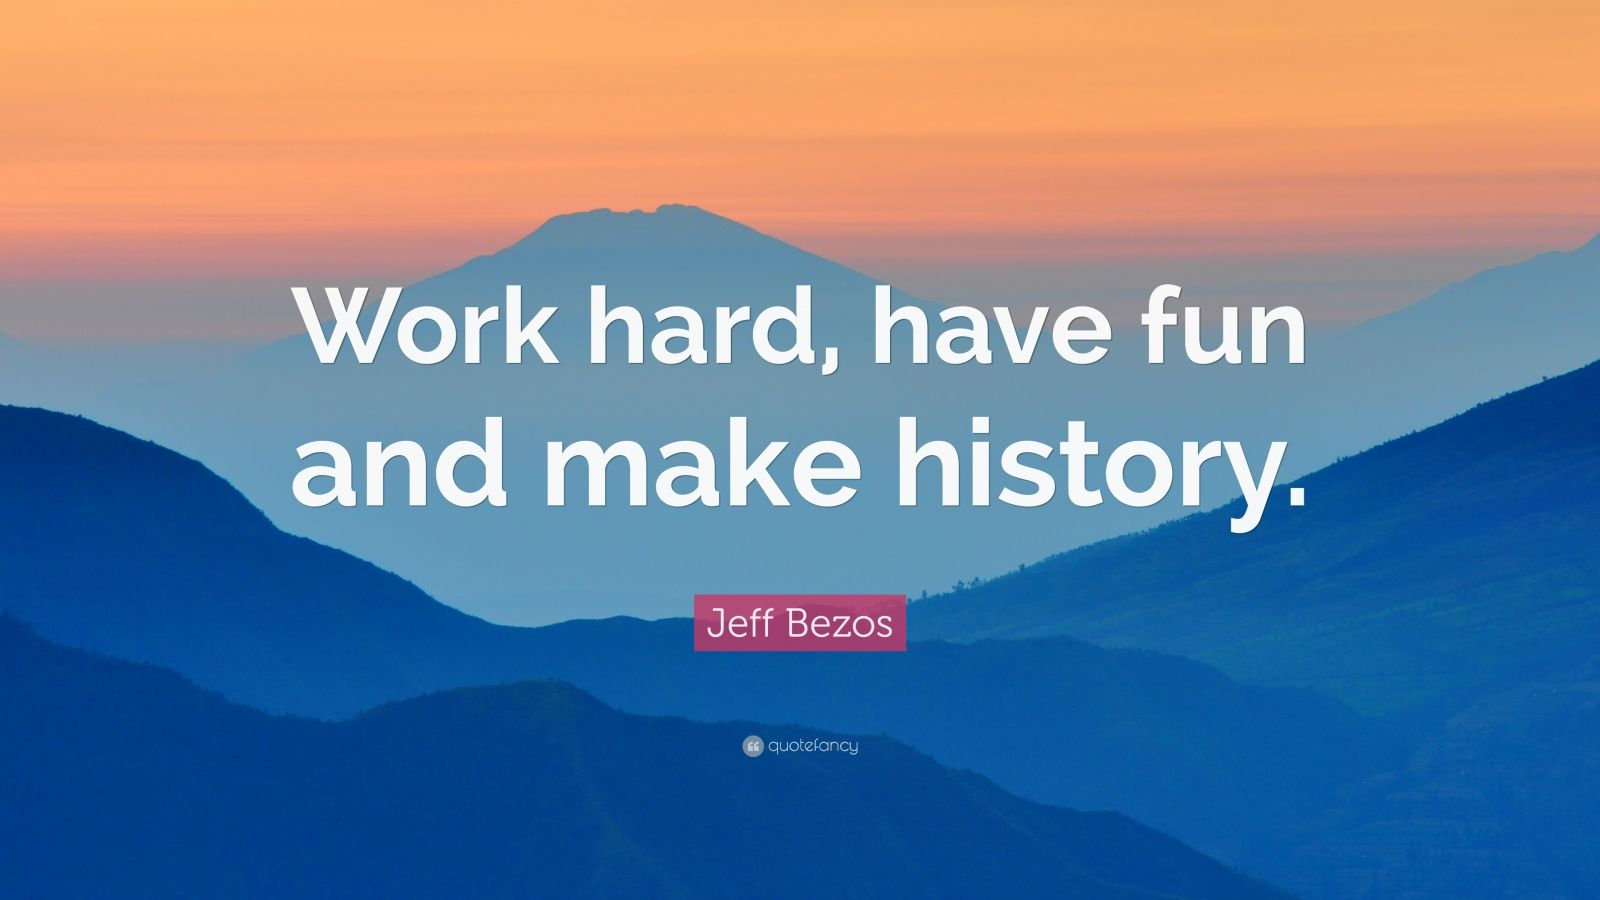 Work Hard Inspirational Quotes Wallpaper Jeff Bezos Quote Work Hard Have Fun And Make History